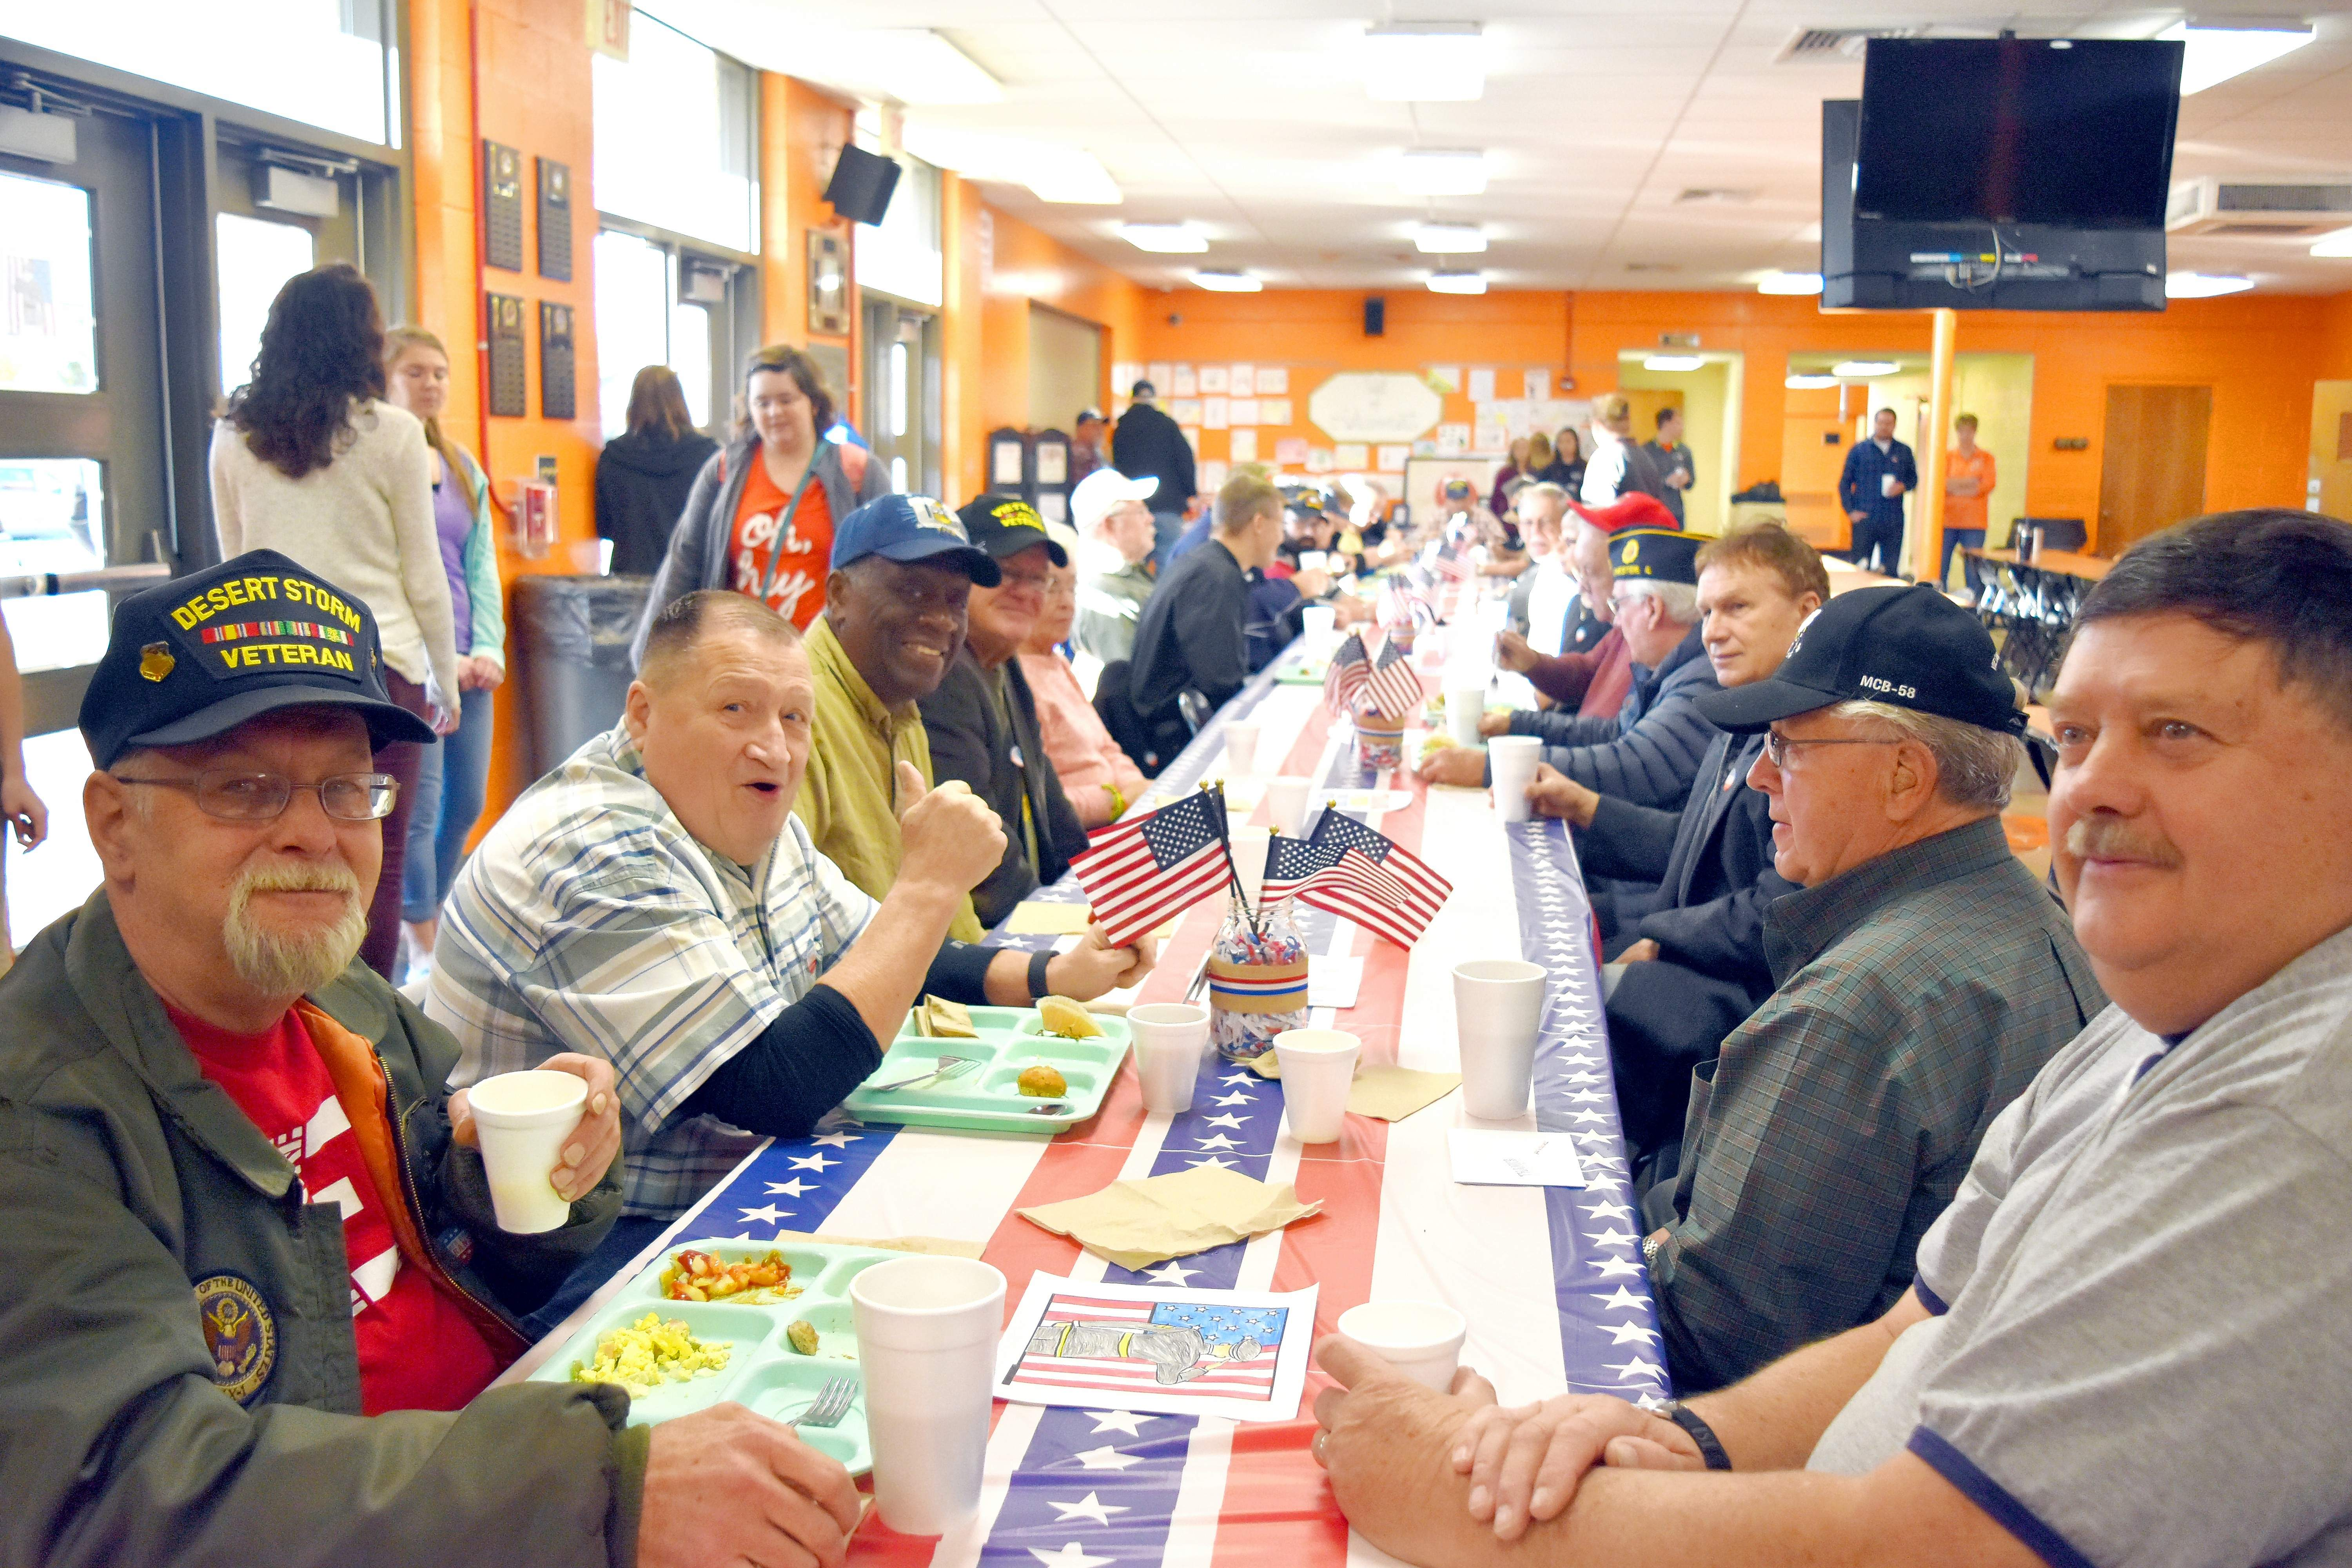 Pictured are, foreground from left, Ron Casetta (Marines), David Wright (Army), Walter McGee (Navy) and Dale Link (Army). Foreground from right, Bob Lockhart (Air Force) and Ron Rathert (Marines) during the Veterans Breakfast at Chester High School on Nov. 9.